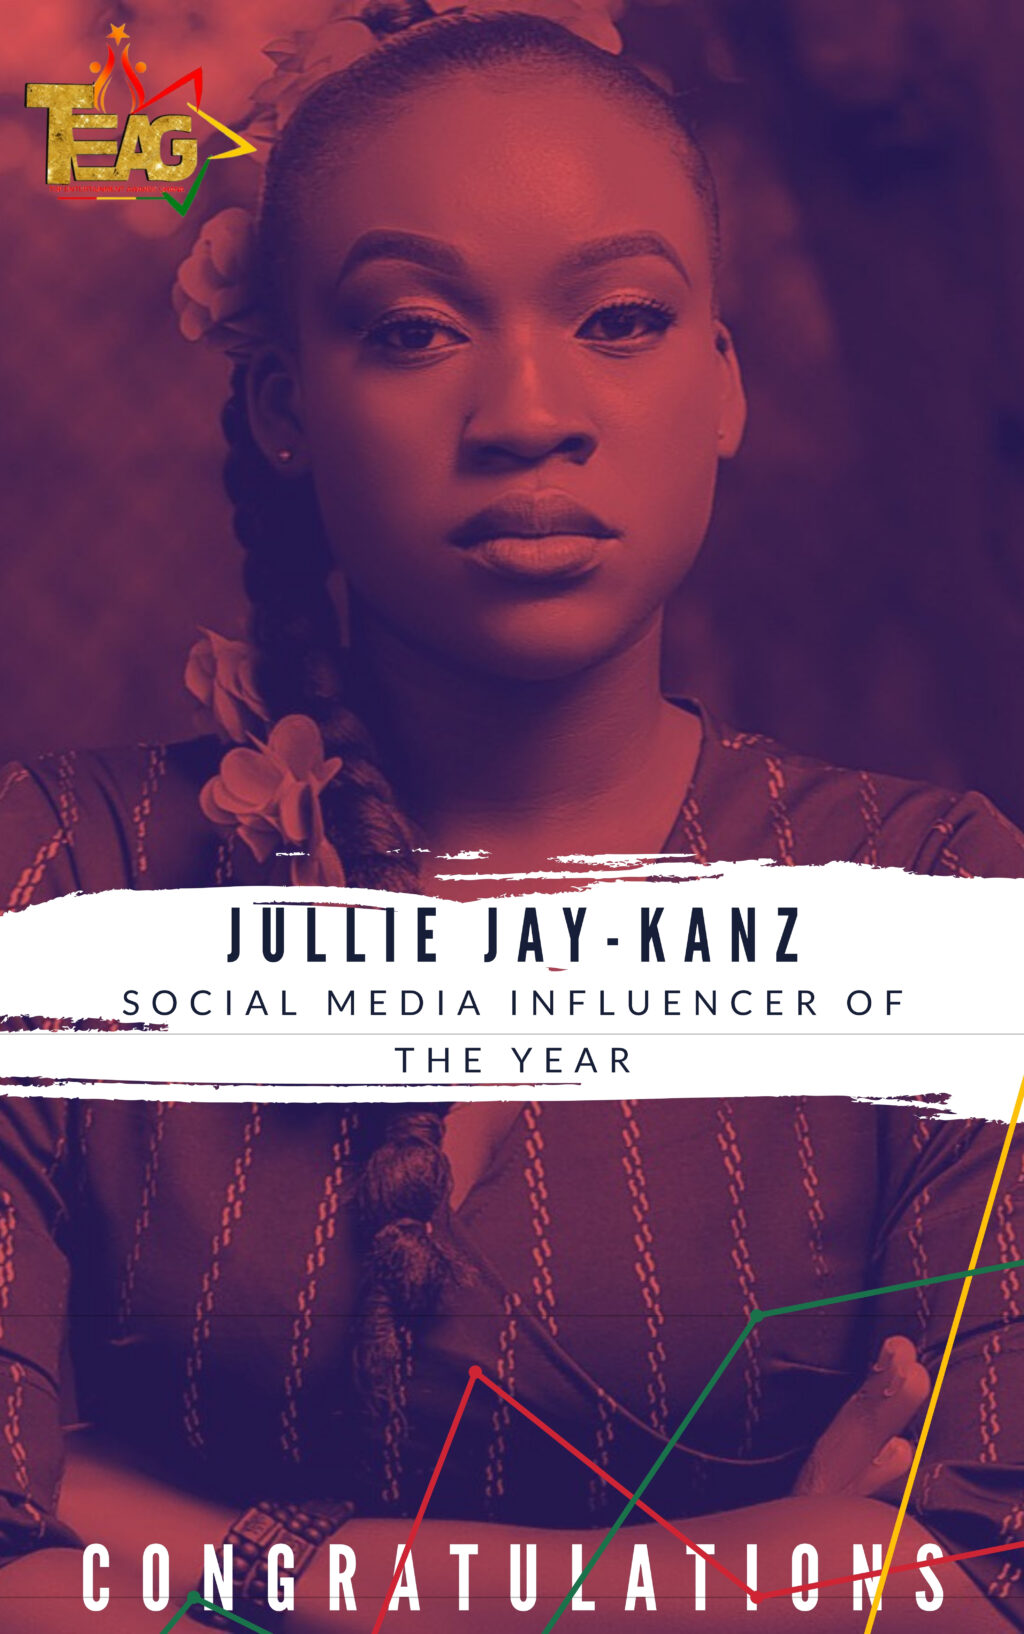 Jullie Jay-Kanz Wins Social Media Influencer of the year